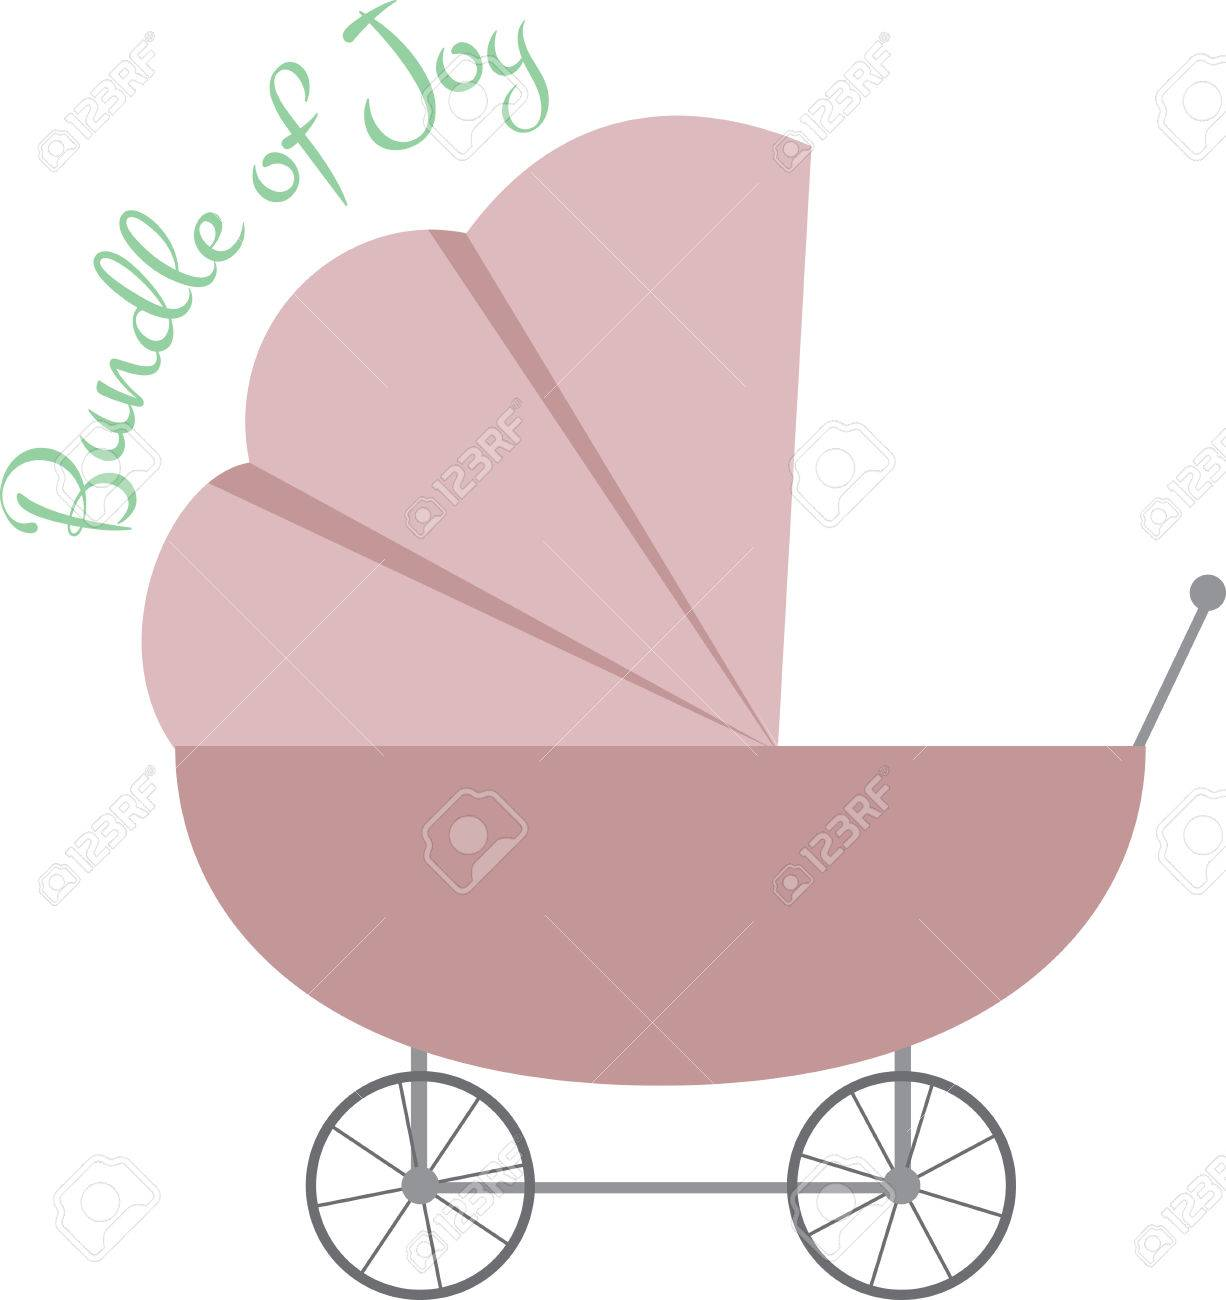 Babydecken Für Kinderwagen Stock Photo